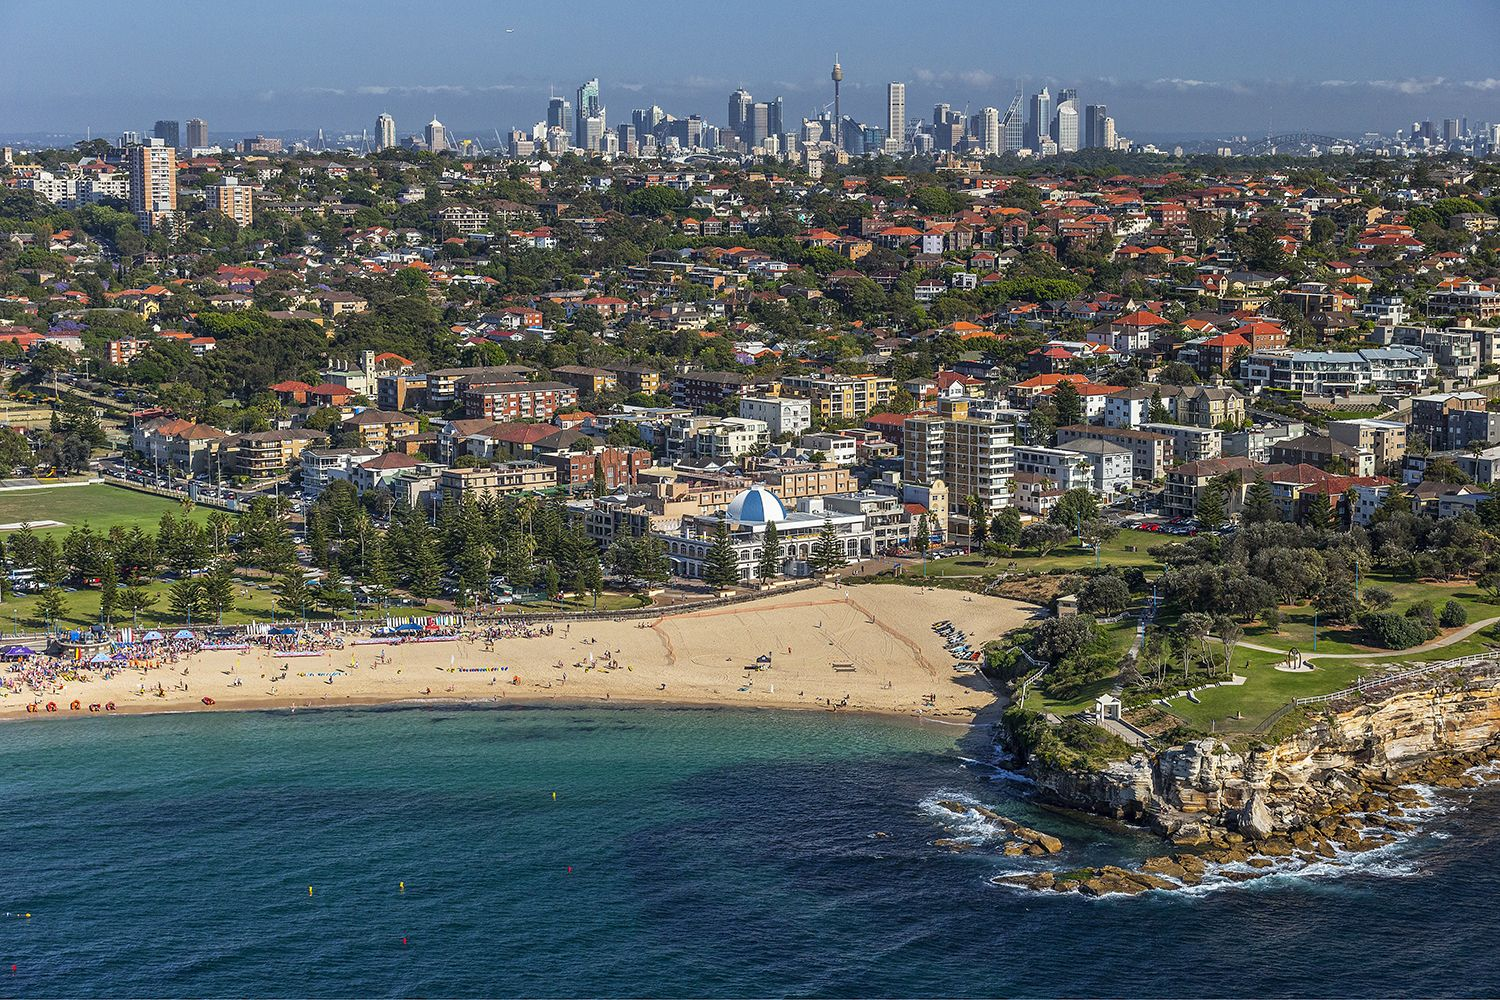 Aerial view of Coogee Beach with a view to the city in Coogee, Sydney East